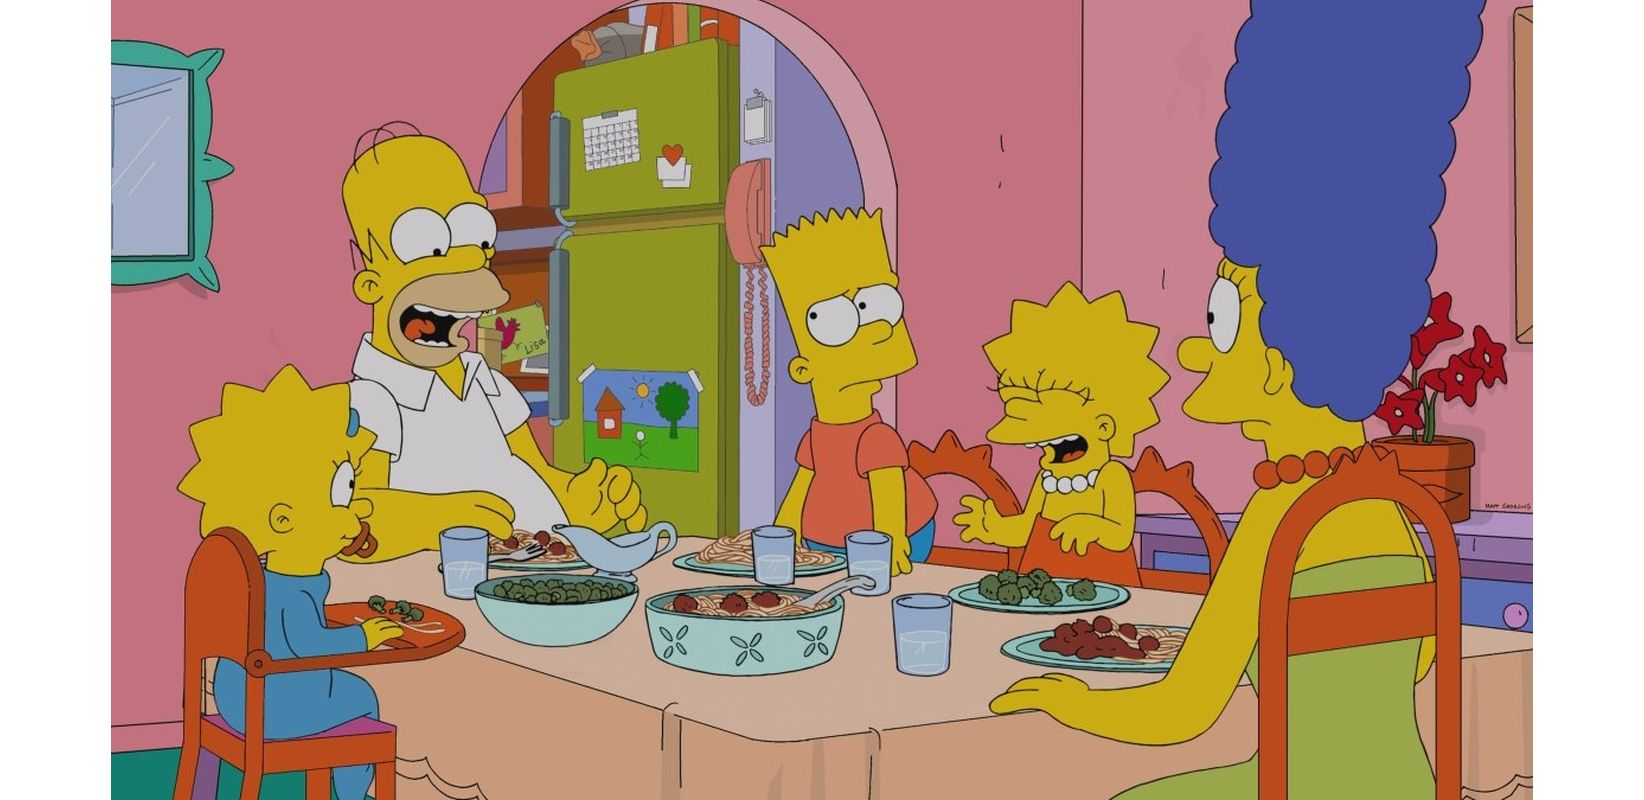 The Simpsons episode featuring Michael Jackson to be removed